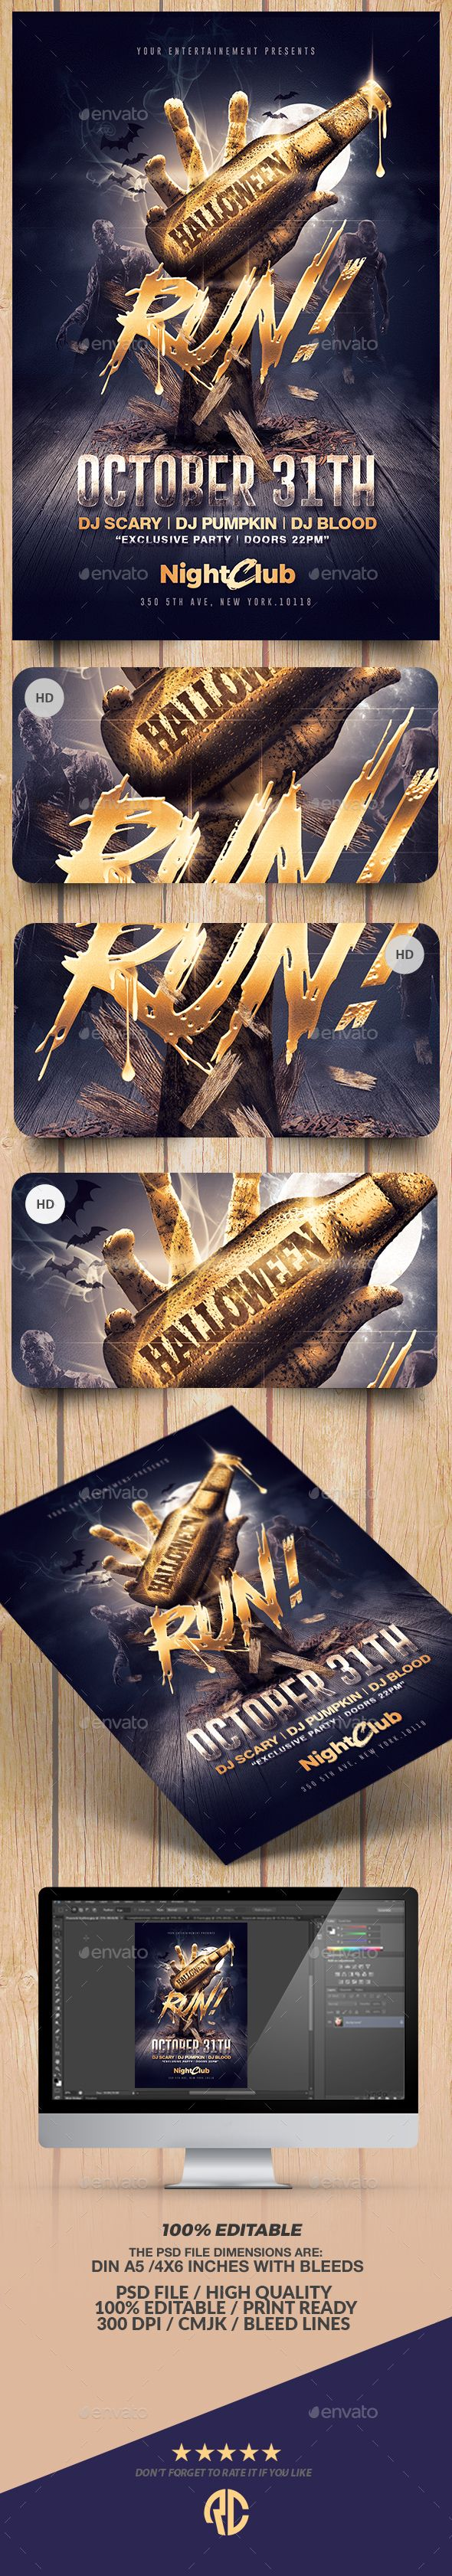 Halloween Zombie Party  Gold Flyer Template  Zombie Party